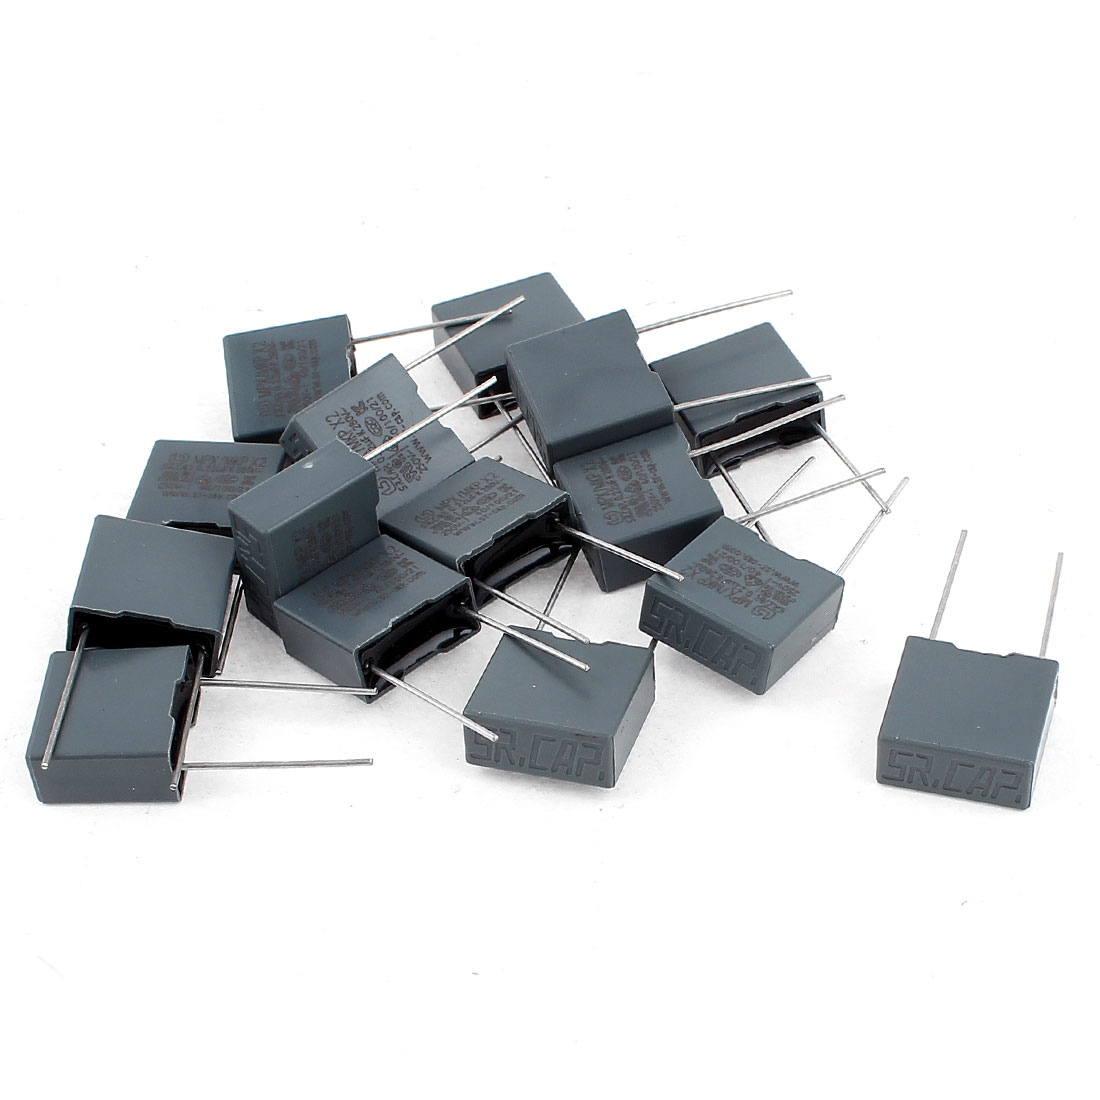 15pcs AC280V 0.22uF Capacitance Two Axial Leads Polyester Film Capacitors